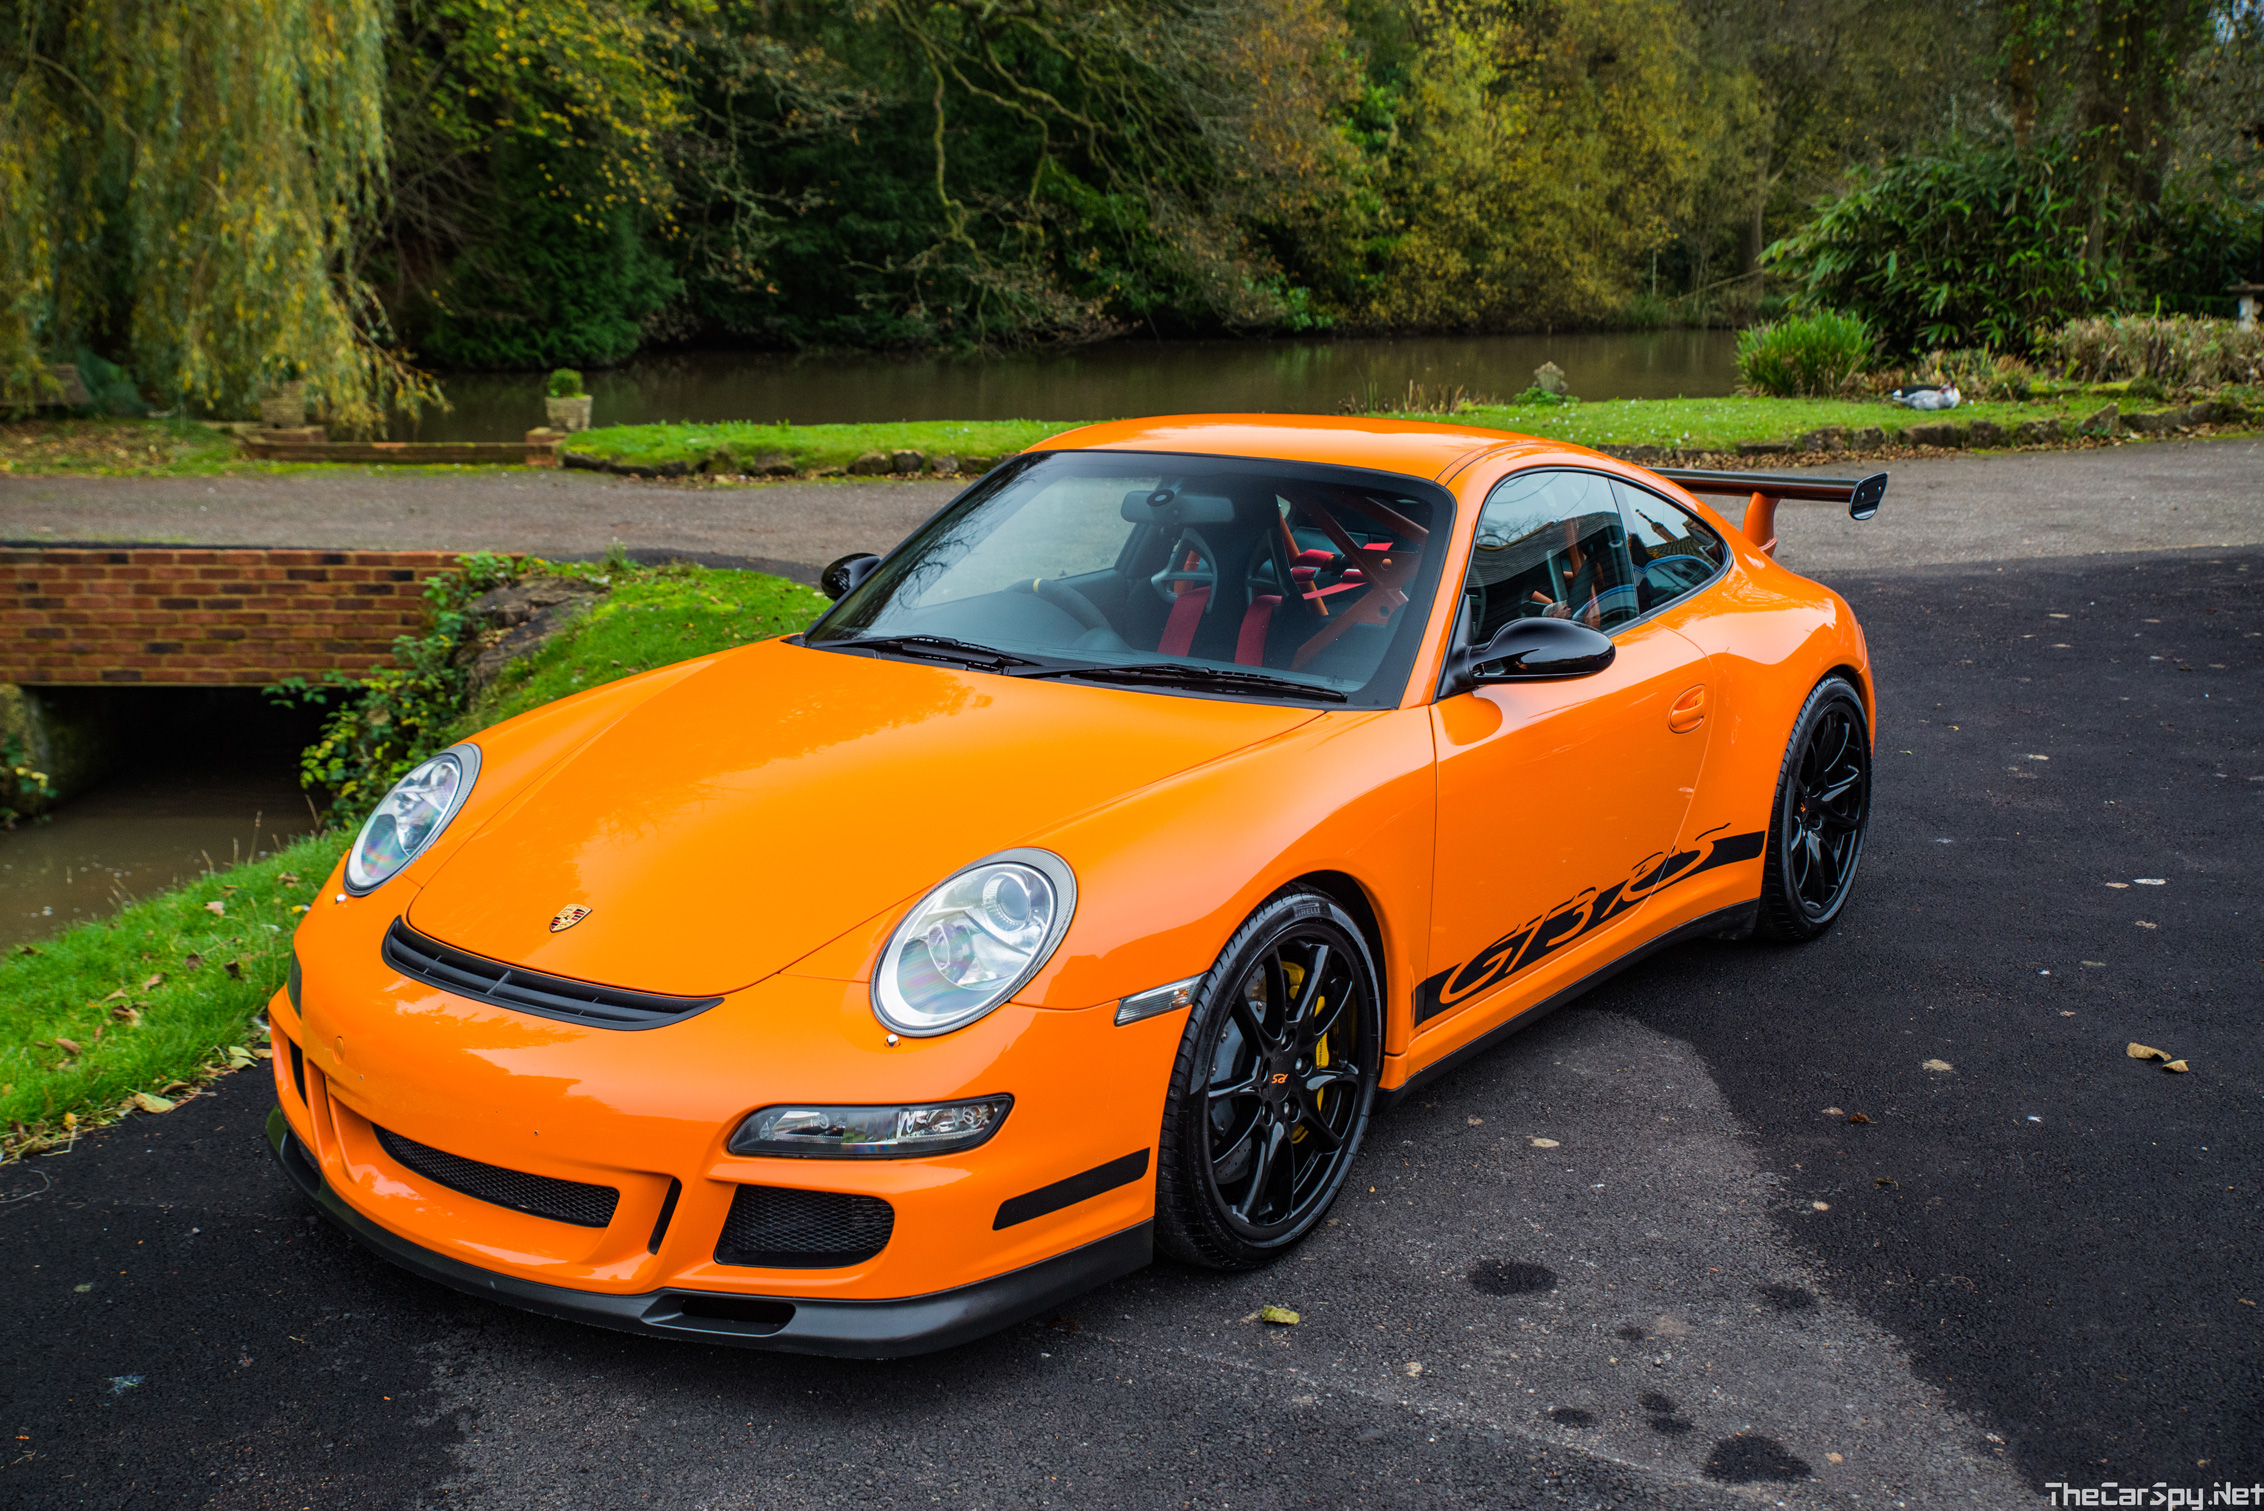 Bill Dodge Bmw >> 2007 Porsche 911 GT3 RS